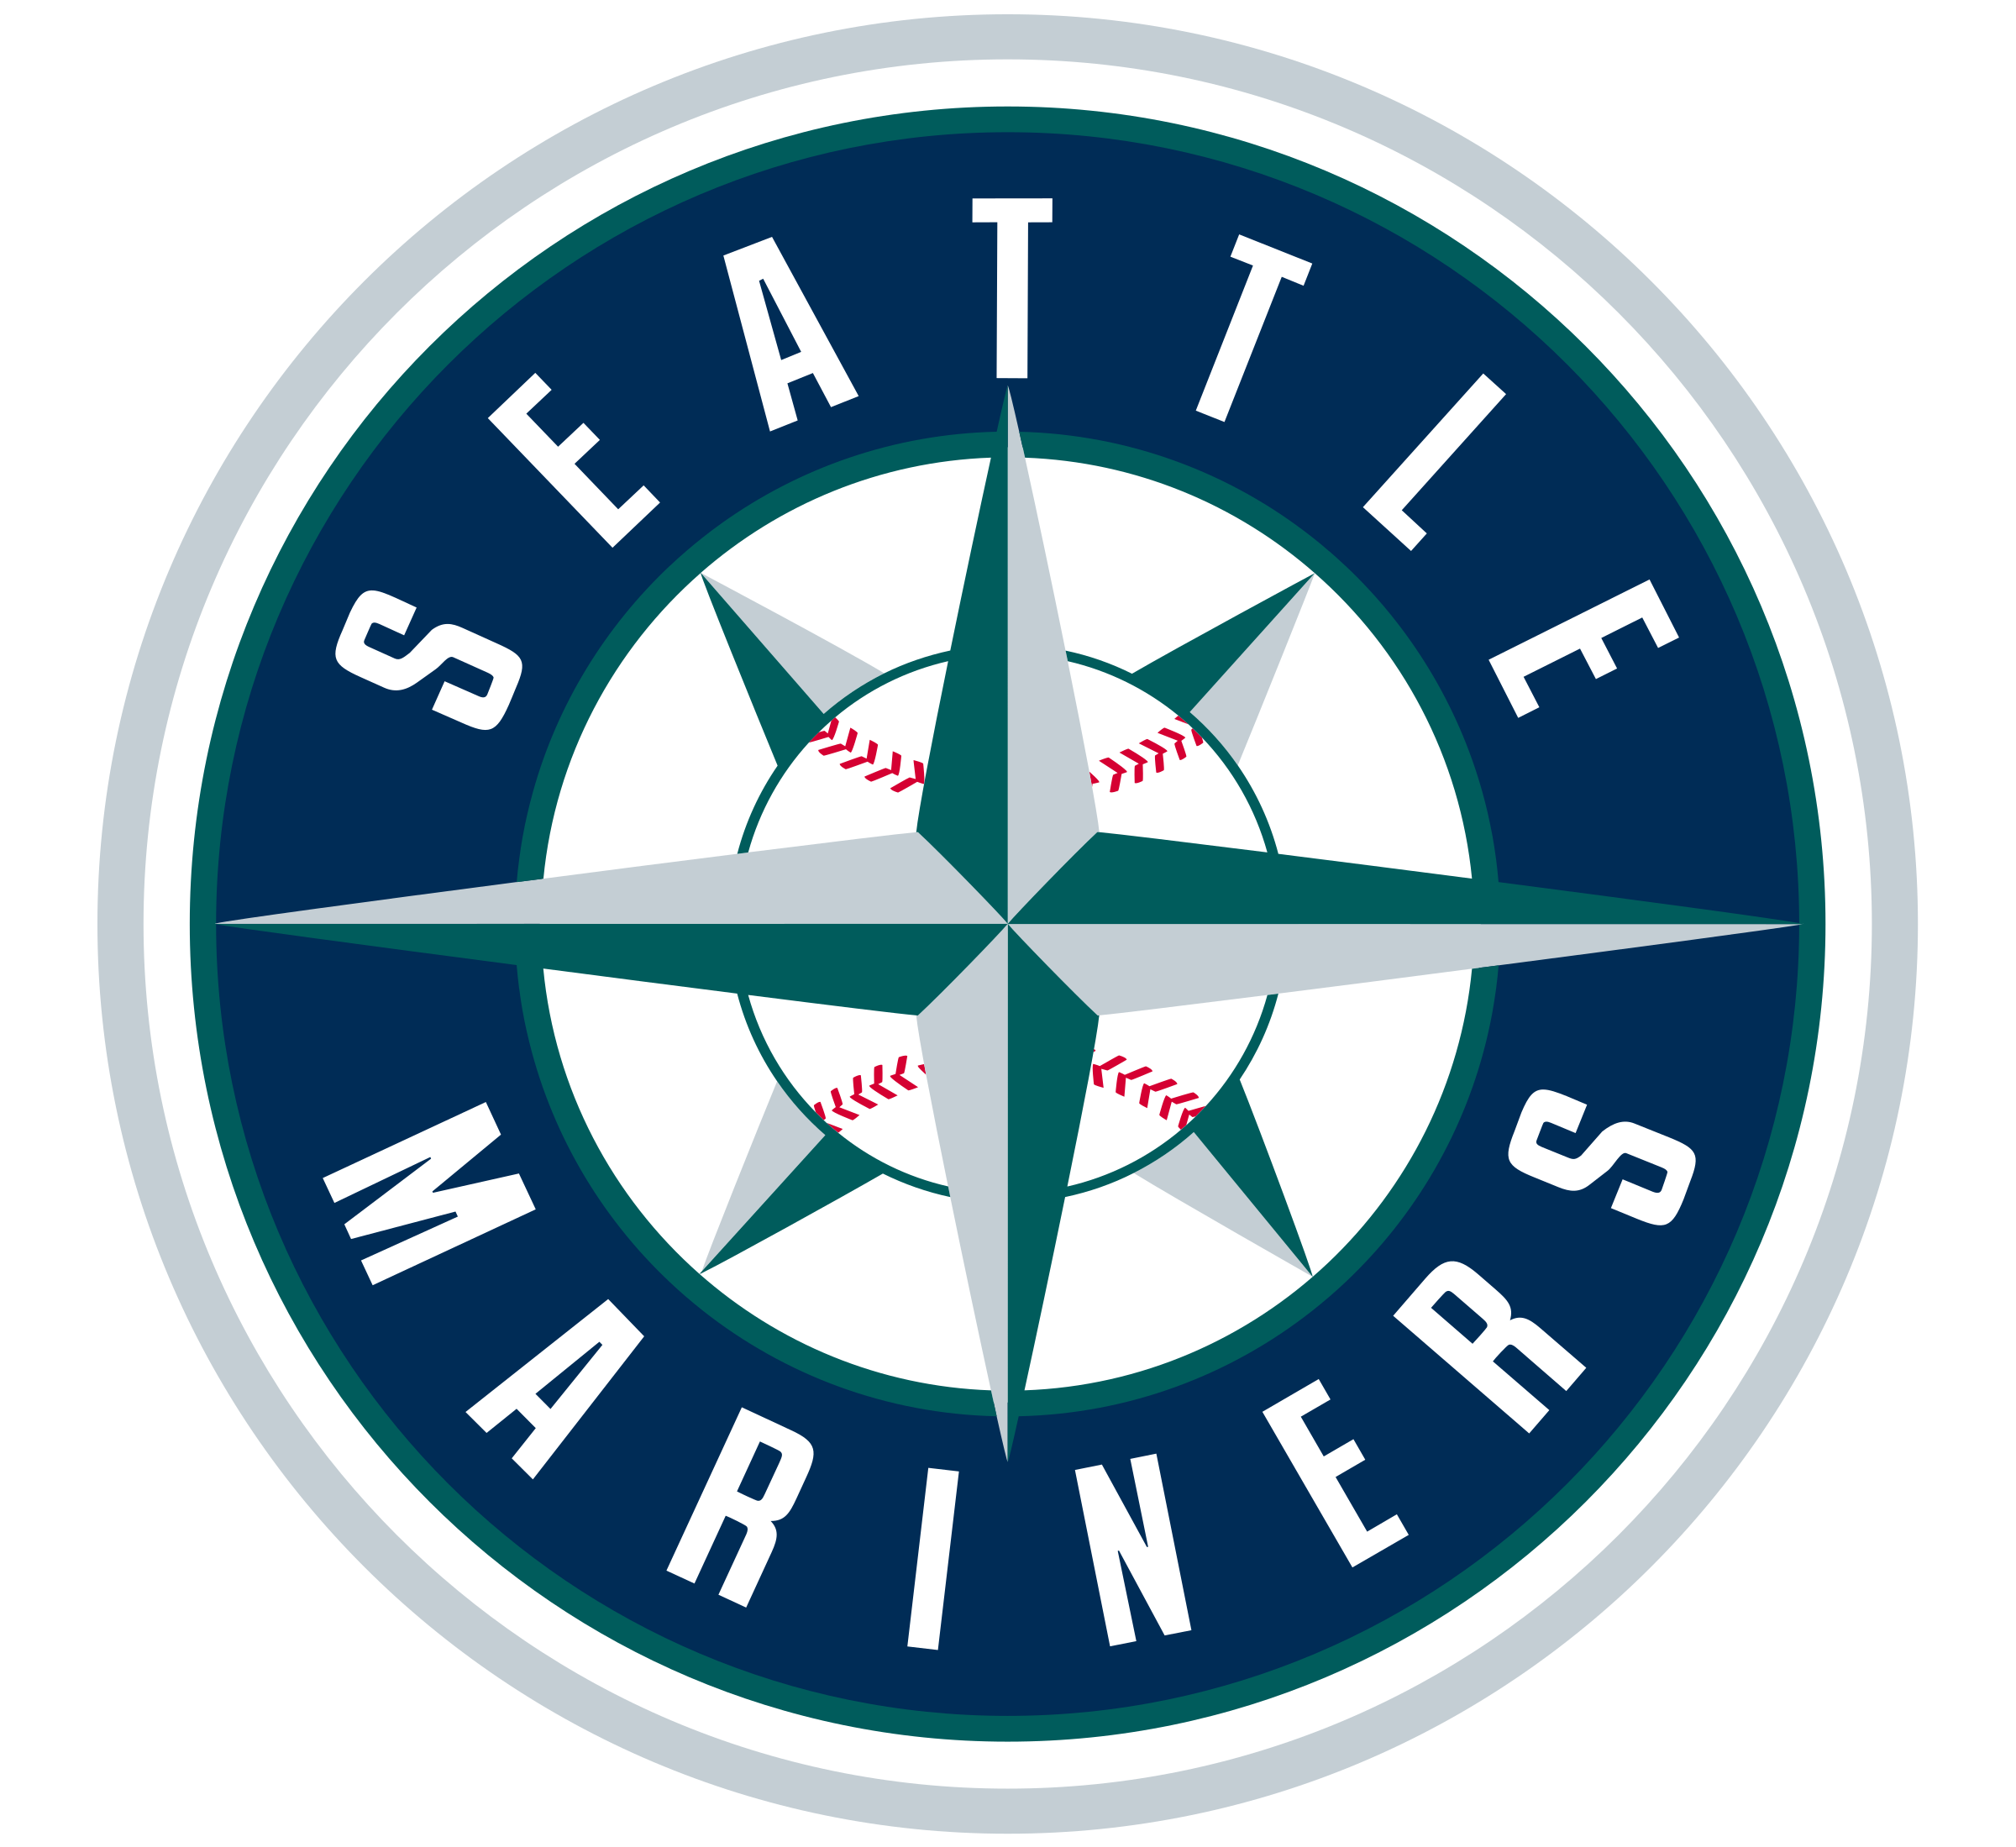 seattle-mariners-logo-transparent.png